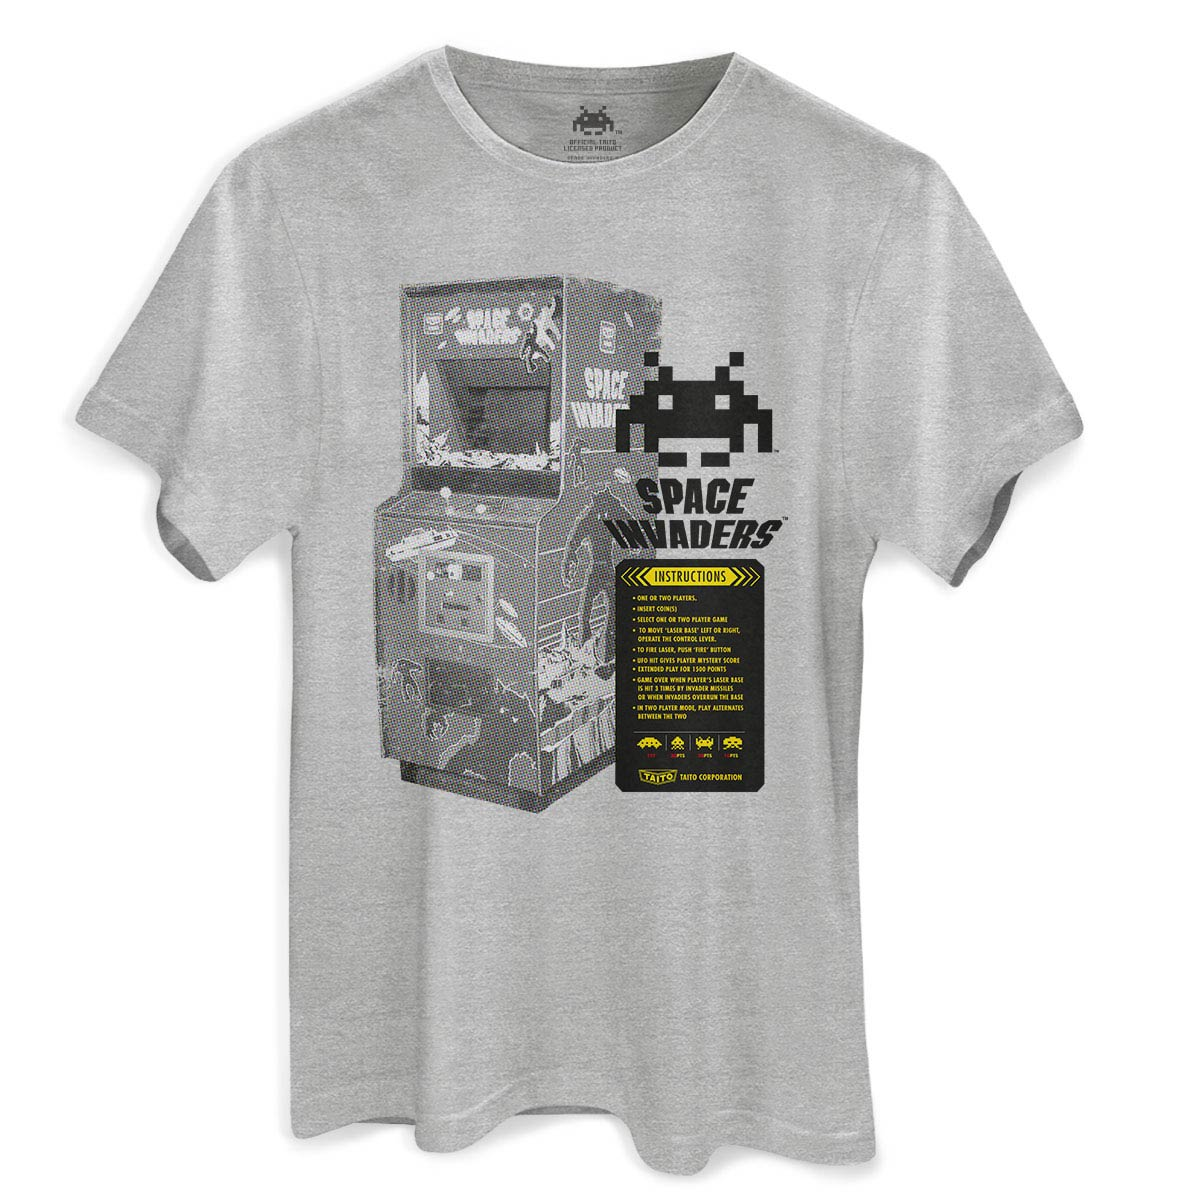 Camiseta Masculina Space Invaders Instructions